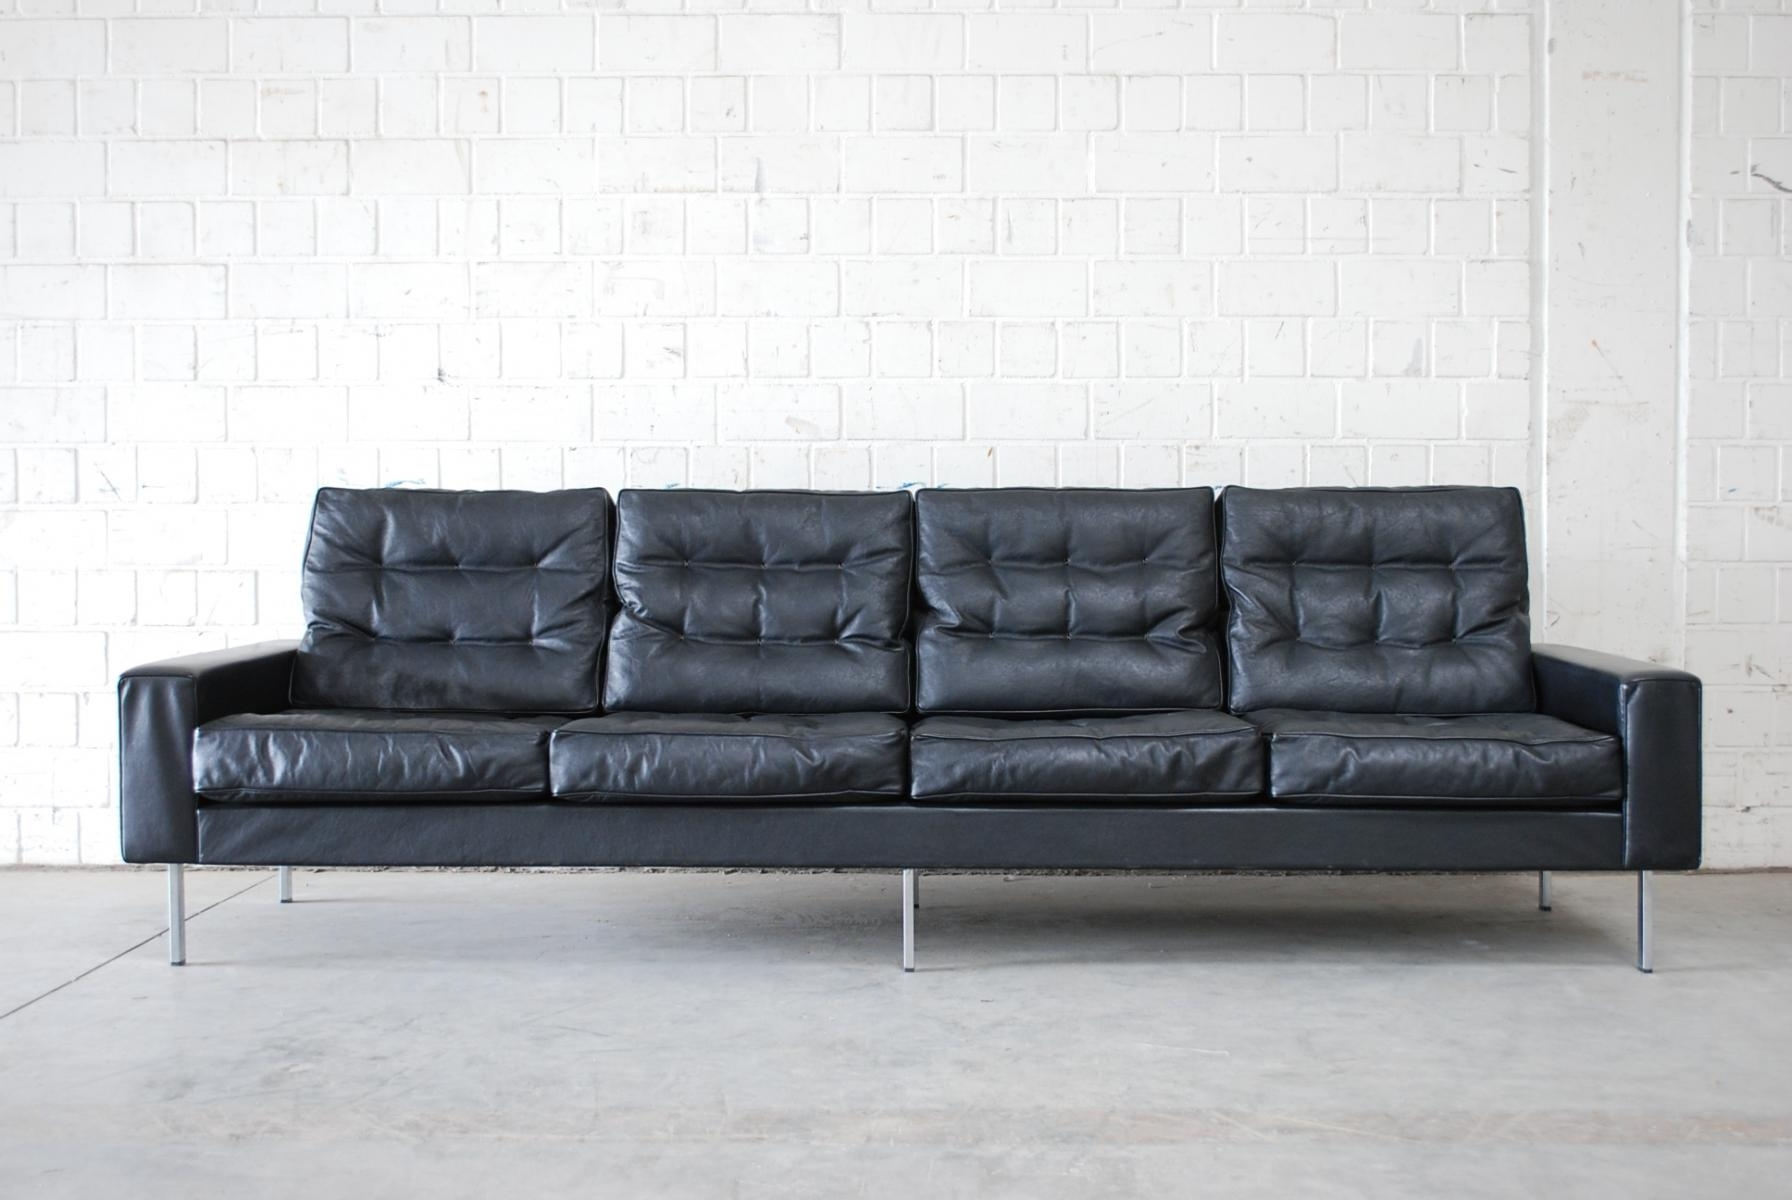 Vintage Black Leather 4 Seater Sofa From De Sede, 1967 For Sale At In Favorite Four Seater Sofas (View 17 of 20)